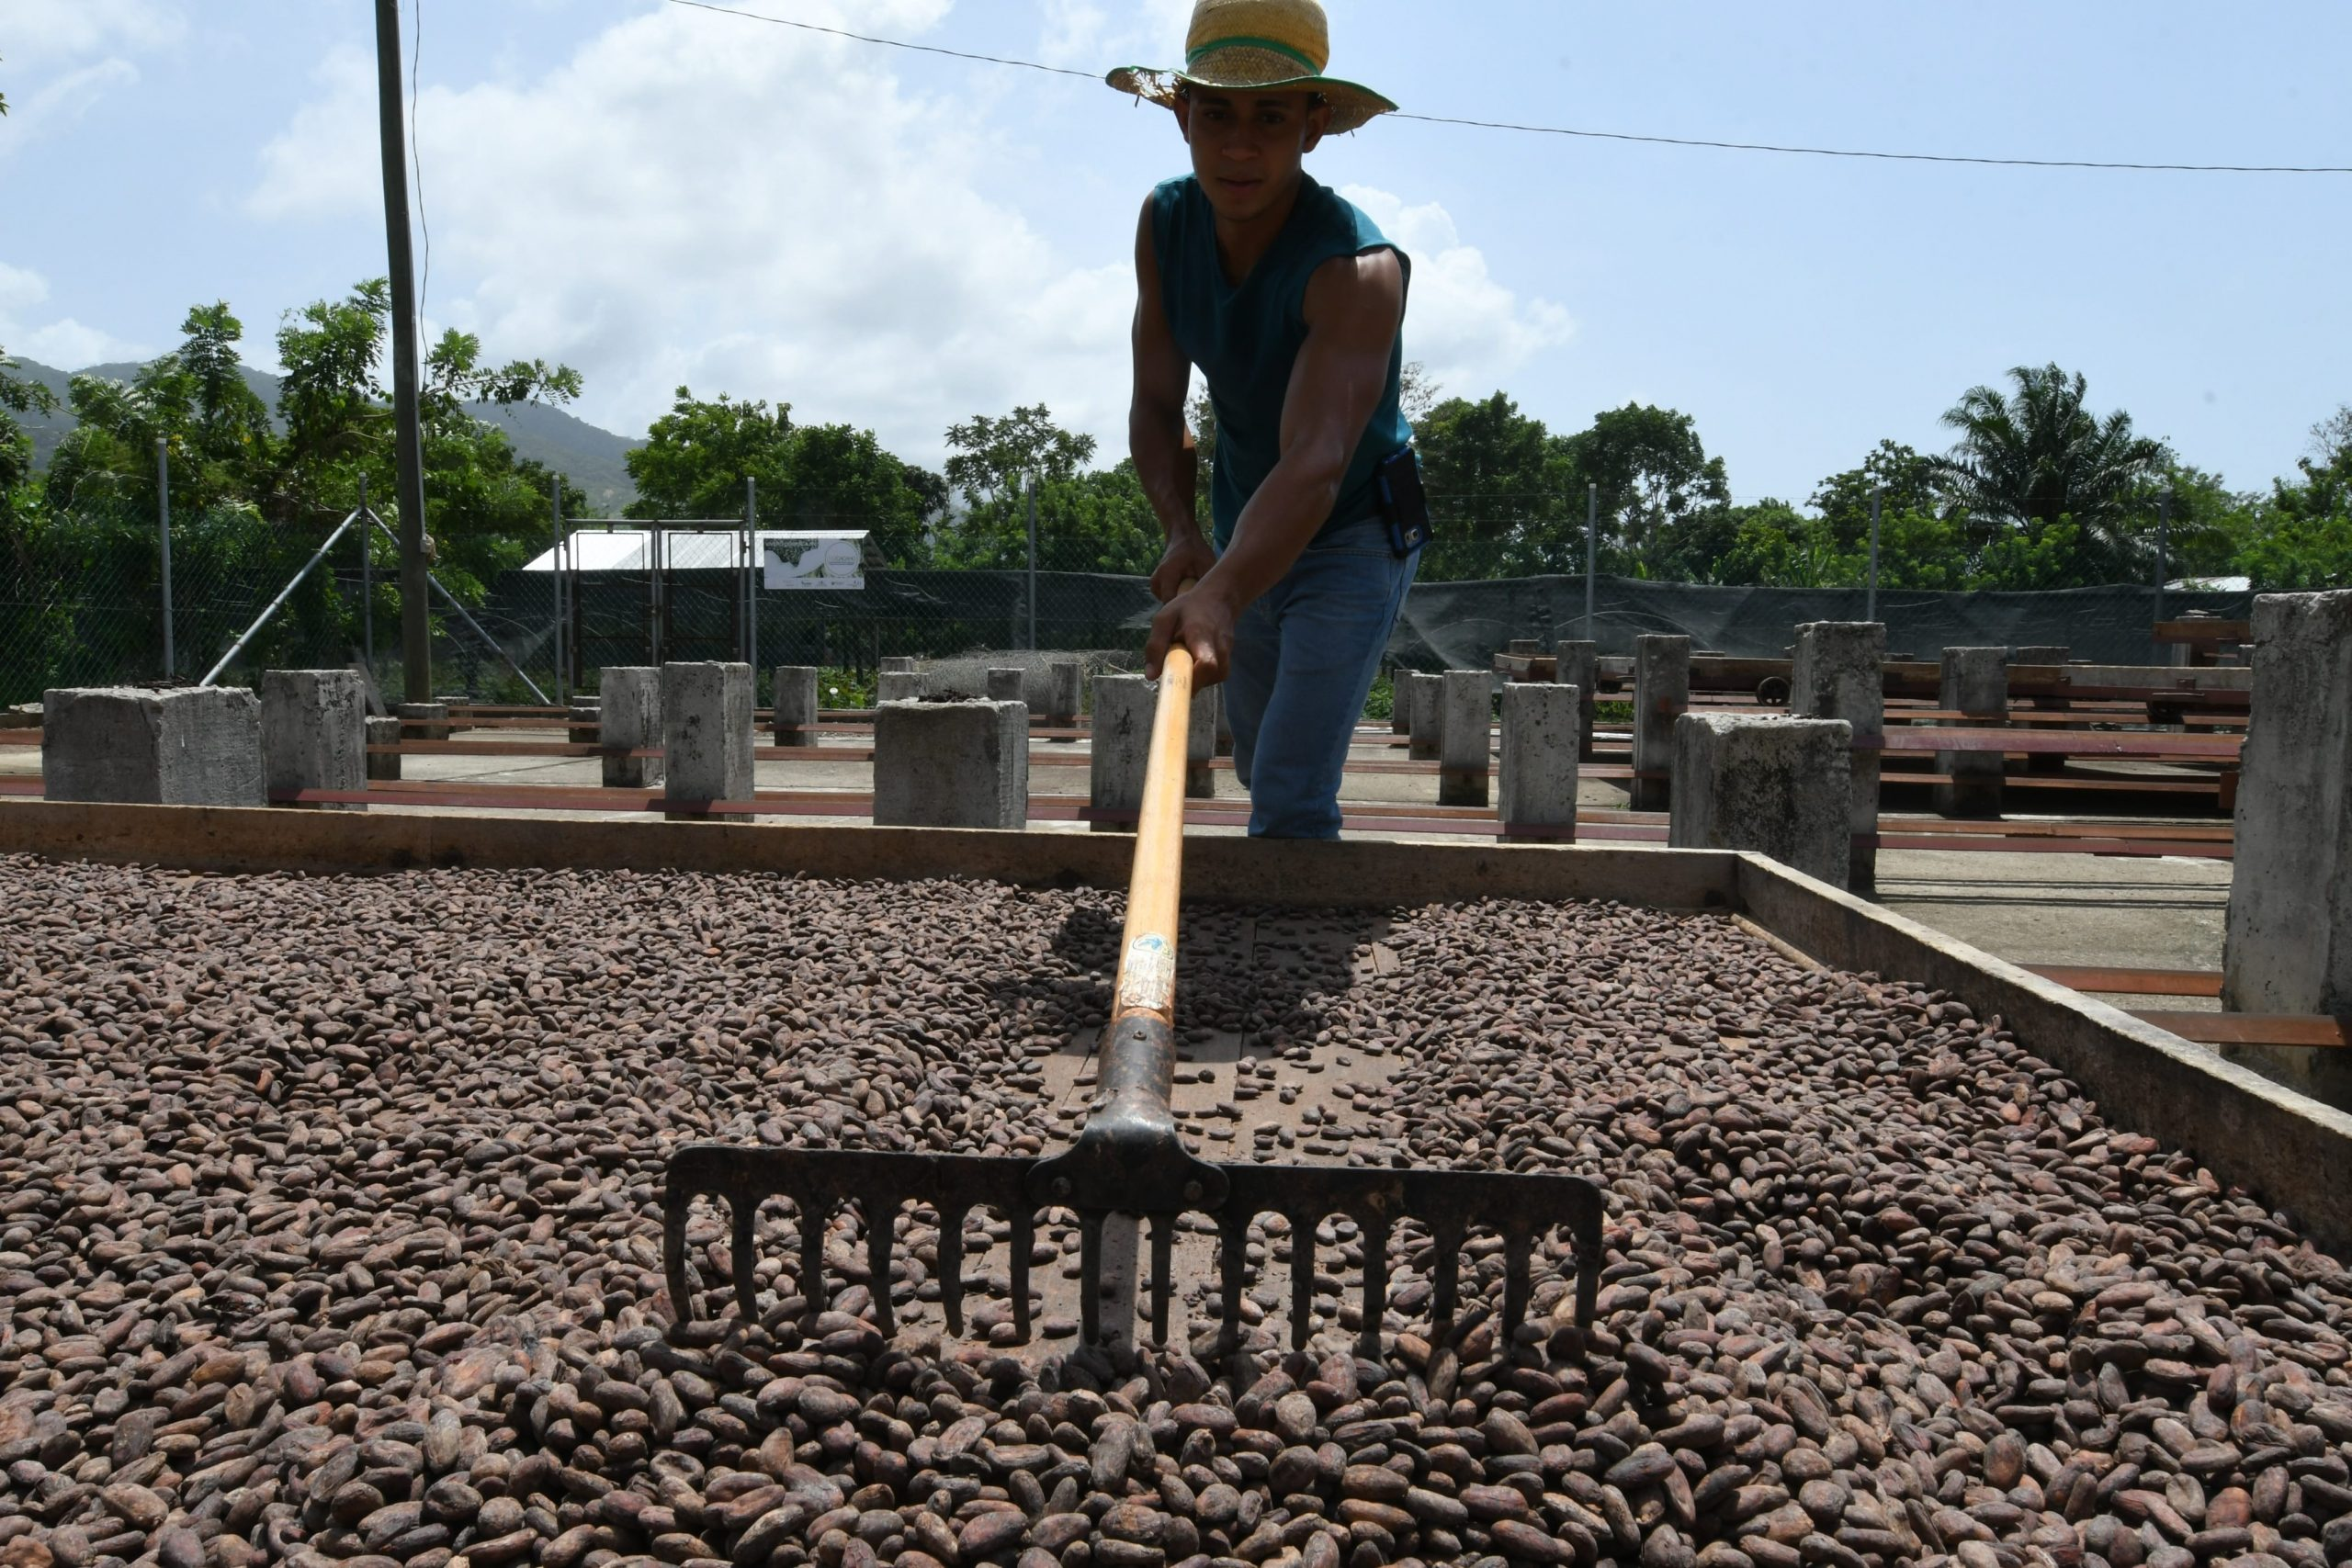 A man in a hat rakes a large tray of drying cacao seeds